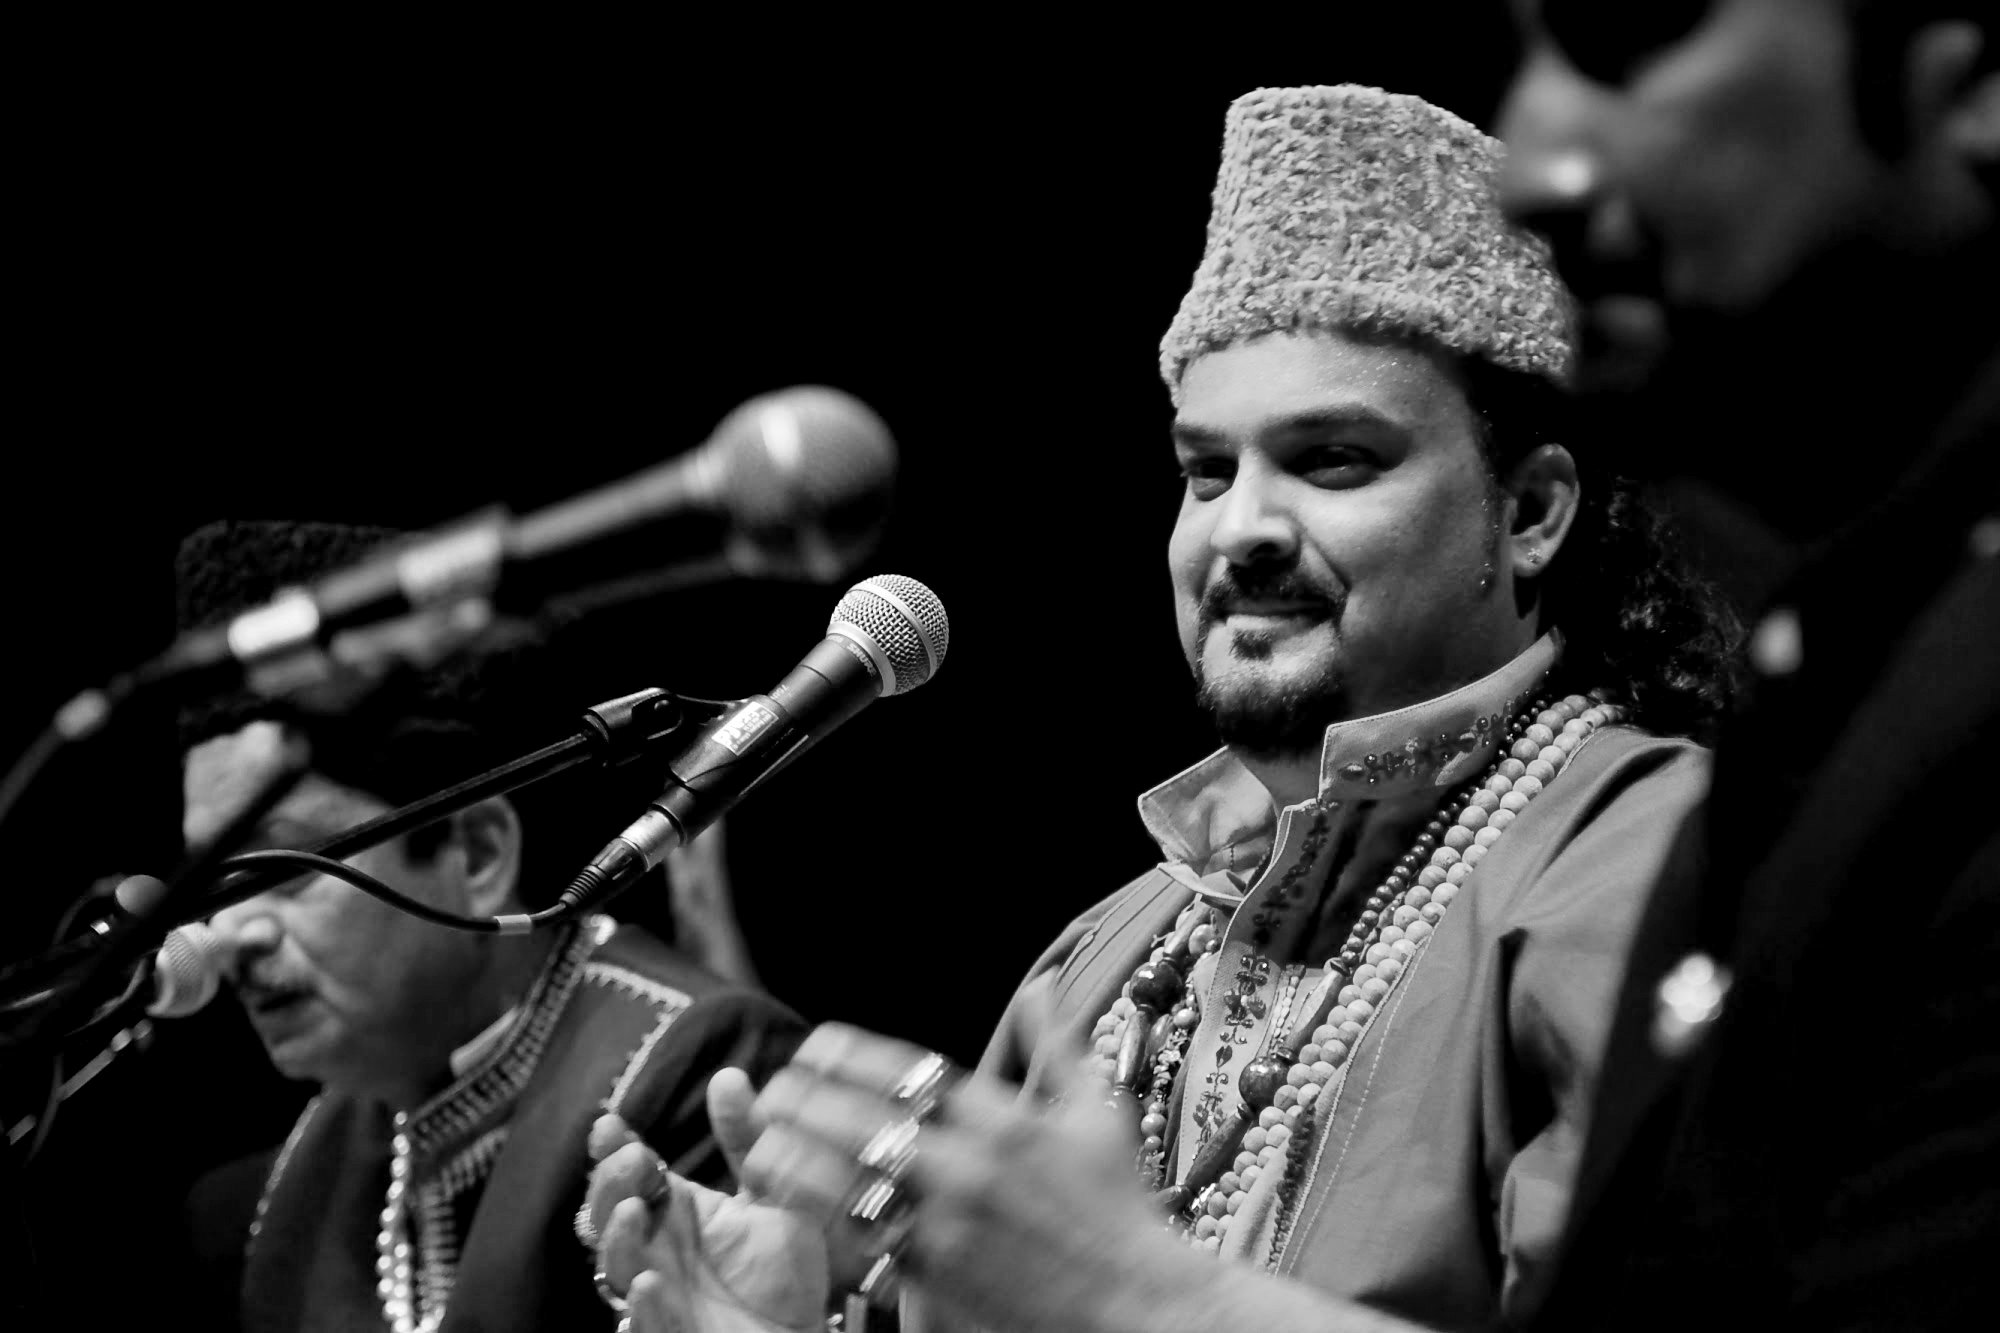 amjad sabri murderers to be indicted in another case